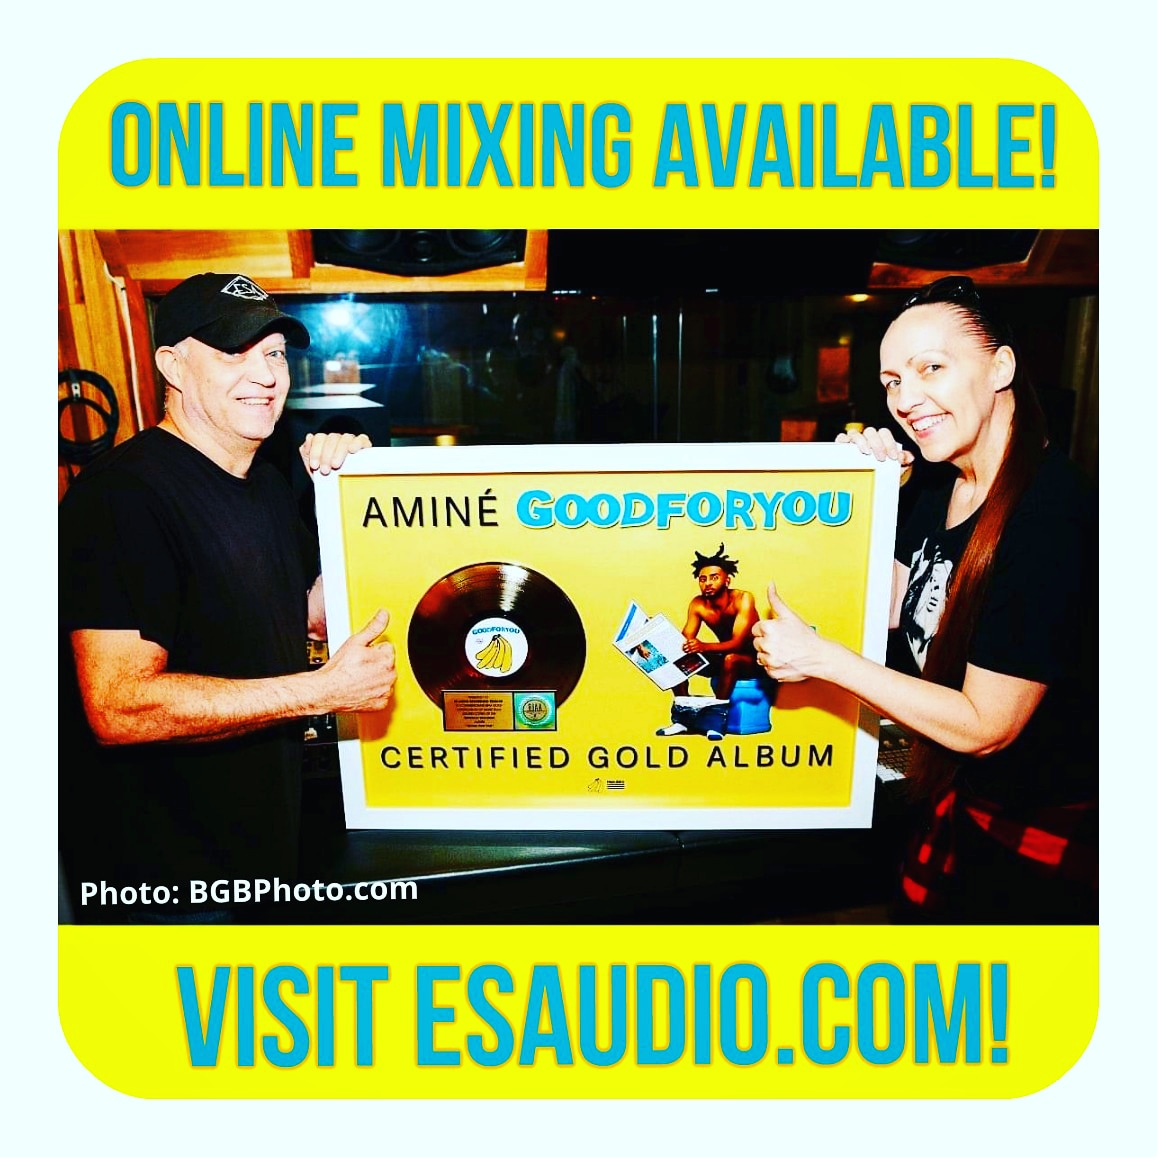 #ESAudio🎶 #RecordingStudio in #LosAngeles,#CA🌴 is #OPEN #Online during the #COVID19😷 Era!👍  Call 818 505 1007📞 to Schedule an Online #Mixing & #Mastering #Session or Ask about our #OnlineClasses Today!😃  Thanks & Have a #Rock'n #TGIF🍹!😎  #Bands #Singers #Podcast #Mixing https://t.co/nYNN92JrIB